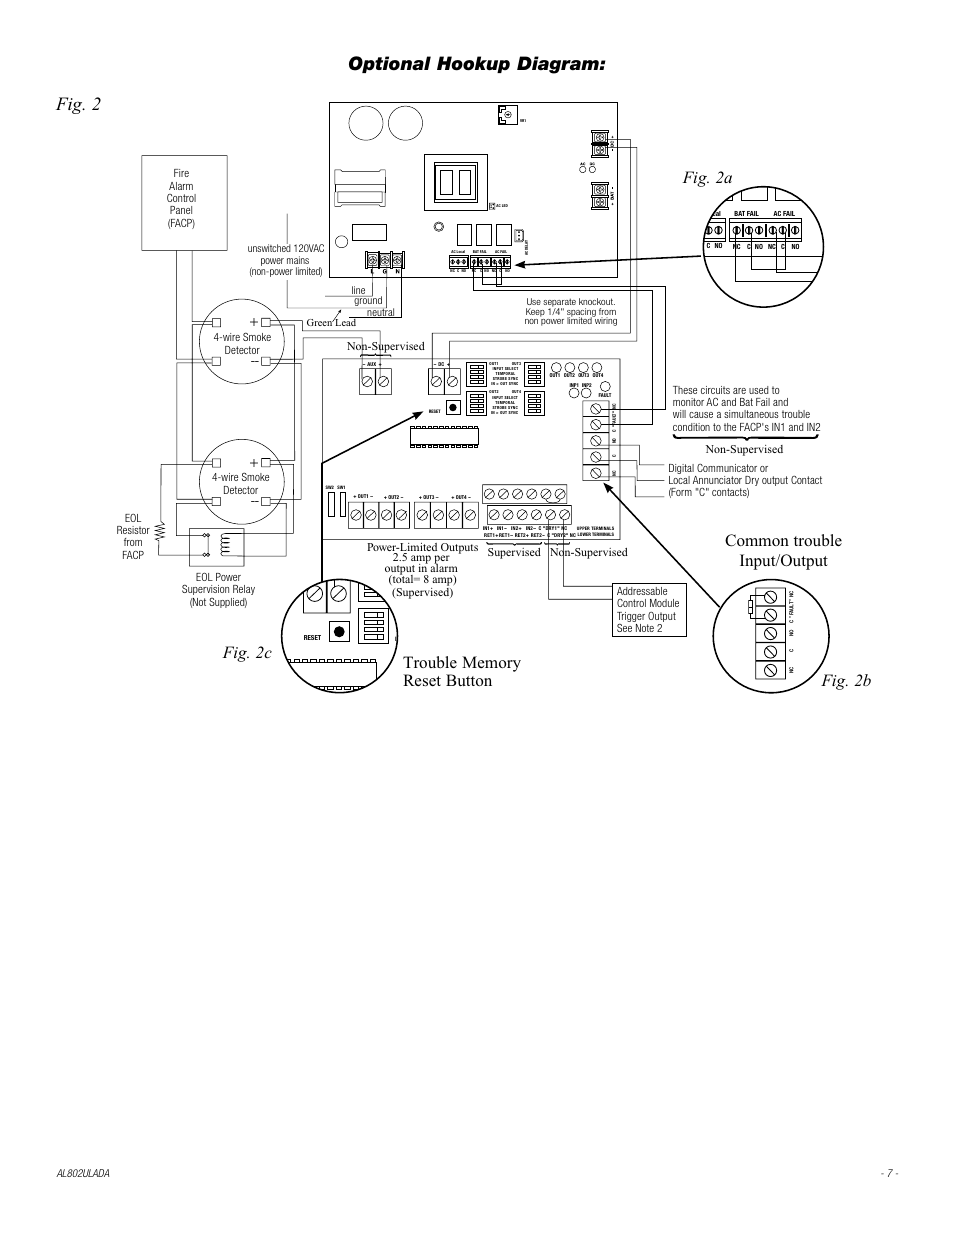 hight resolution of line ground neutral unswitched 120vac power mains non power limited fig 2 altronix al802ulada installation instructions user manual page 7 12